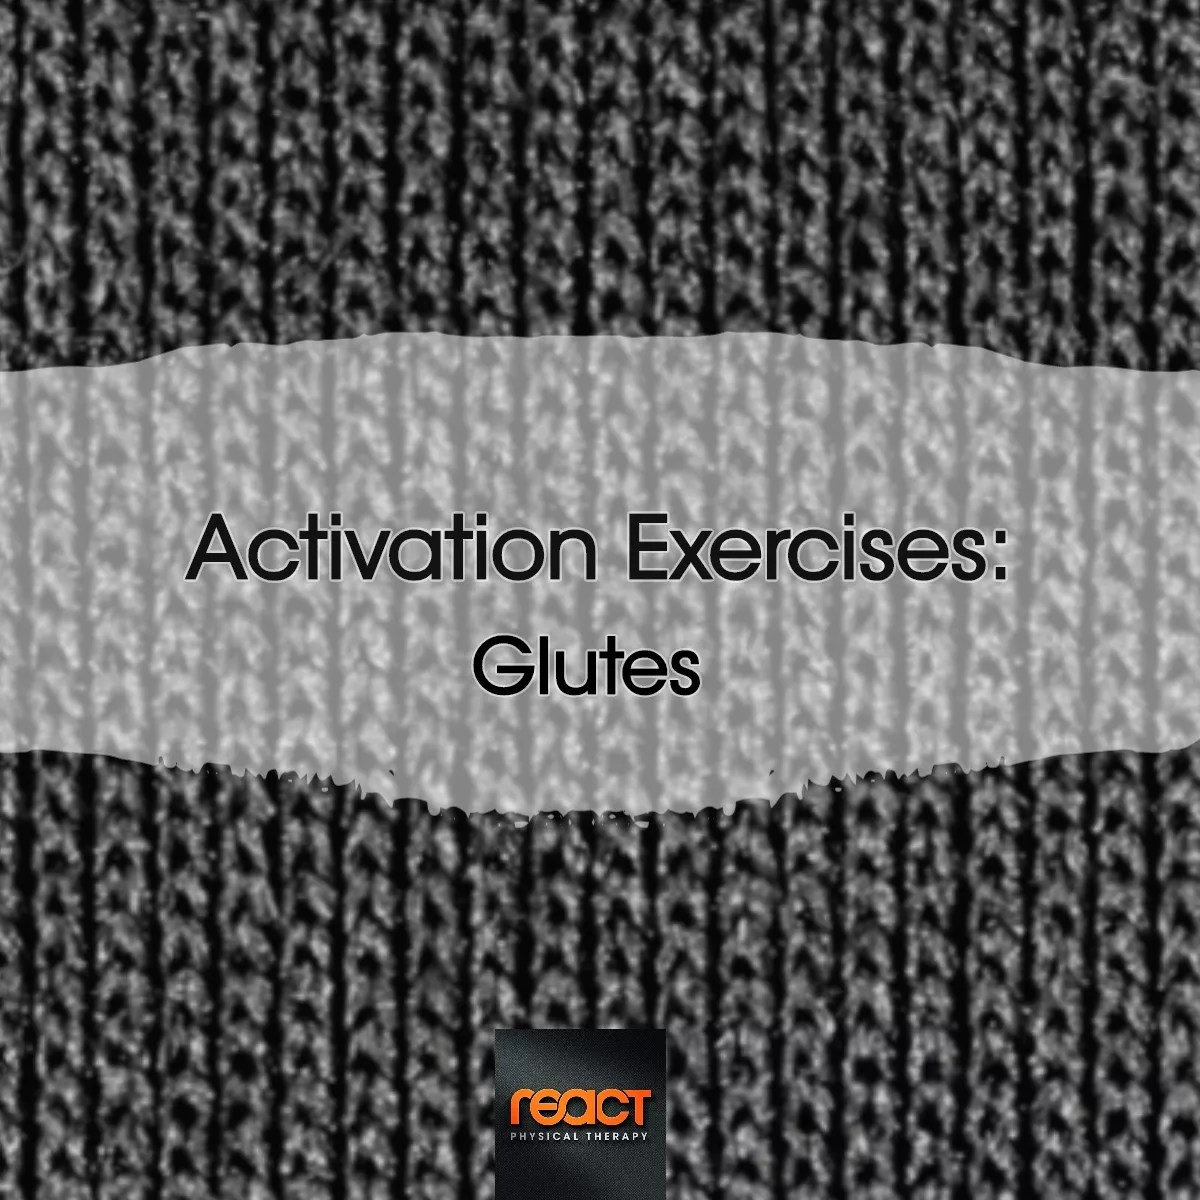 Activation Exercises: Glutes